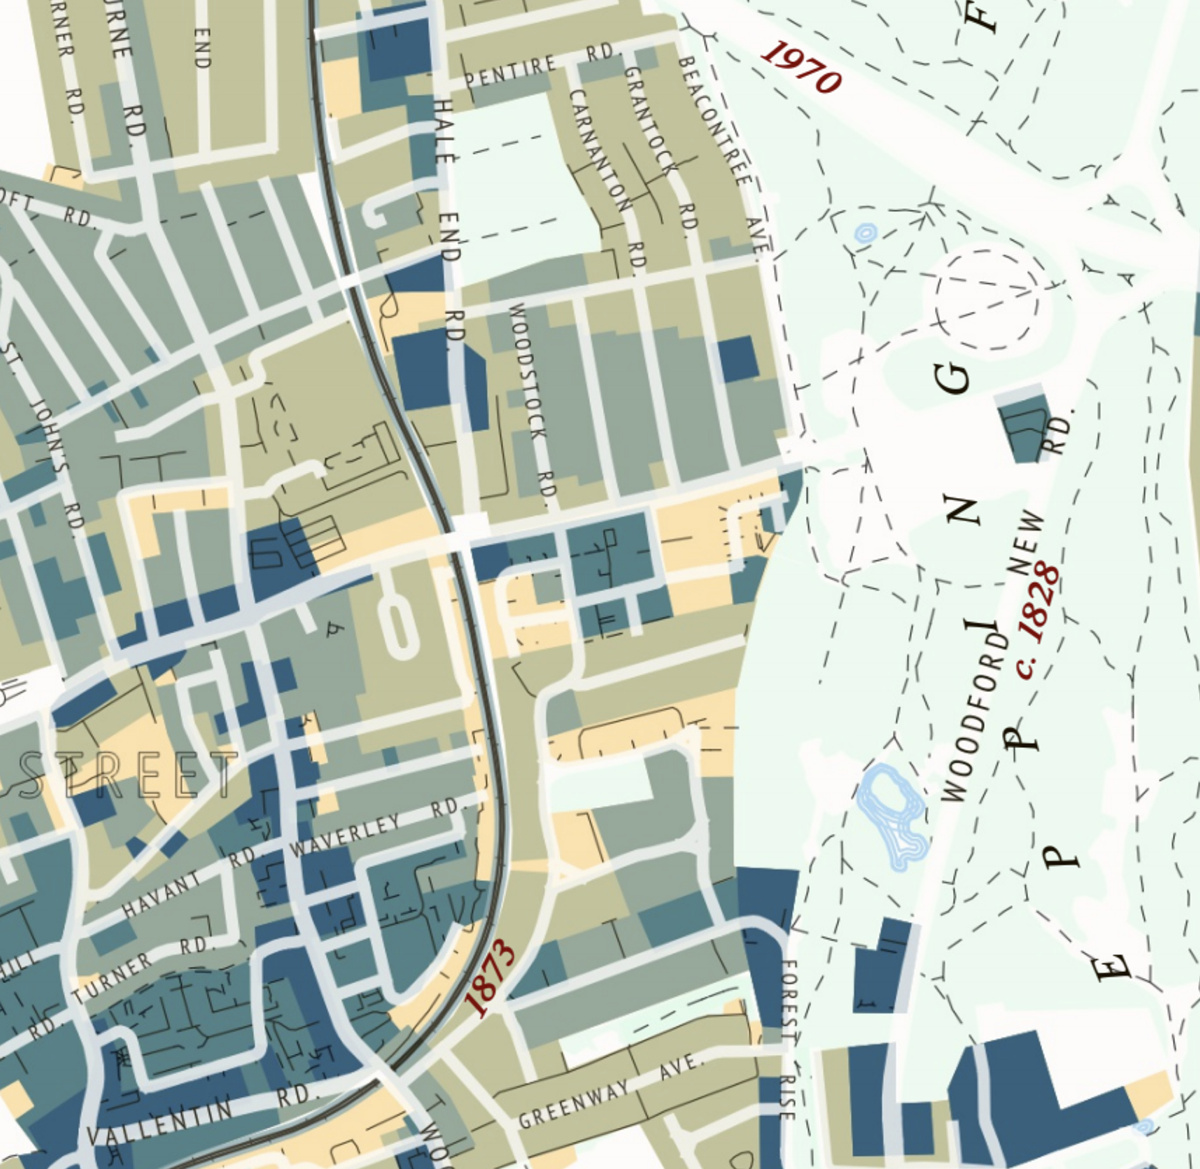 A Chronological Map of Walthamstow